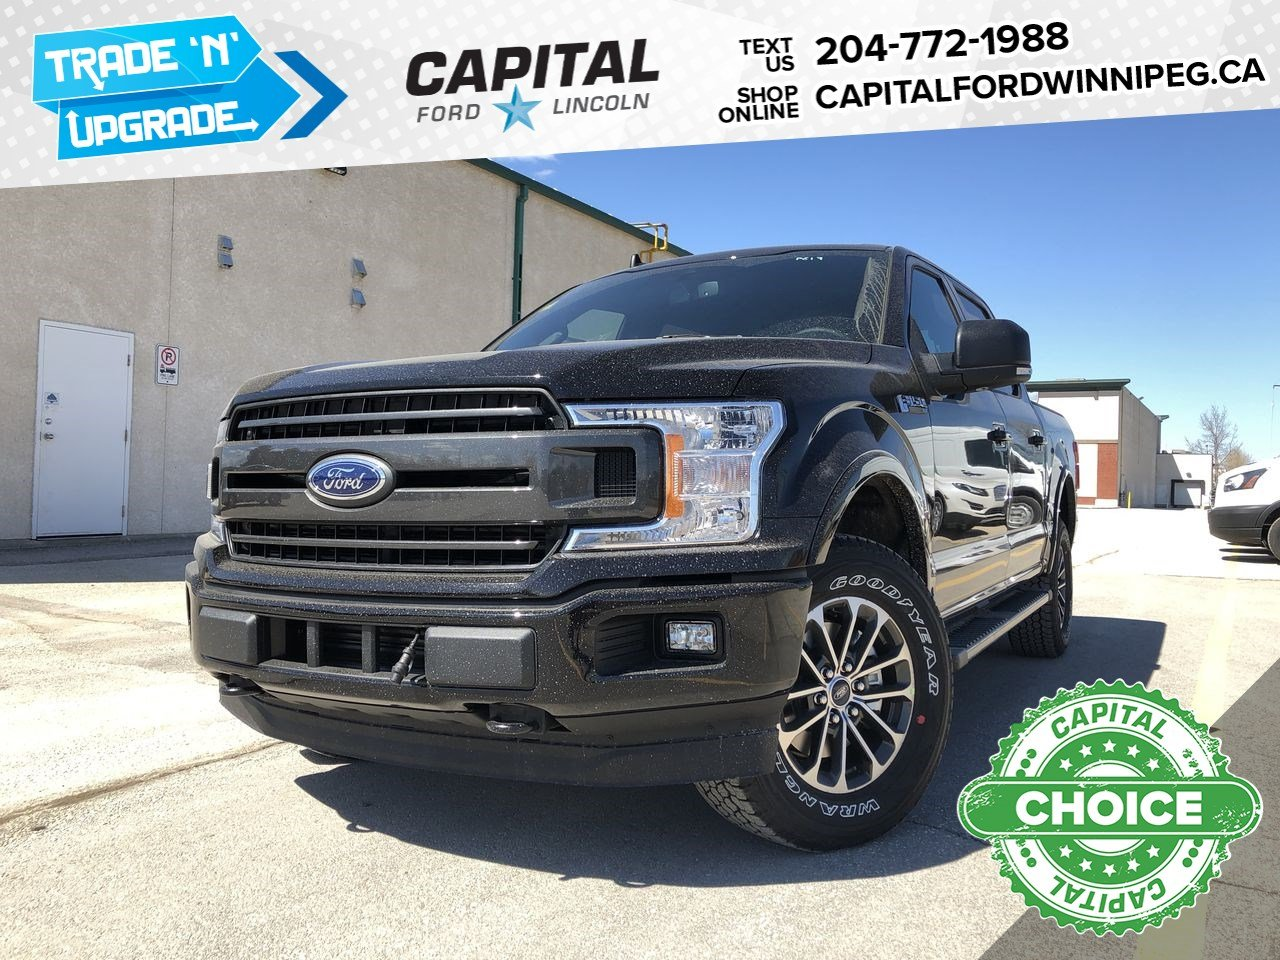 New 2019 Ford F-150 XLT*Sport*3.5L*Heated Seats*Tow Pkg*Upgraded Wheels & Tires*Bluetooth